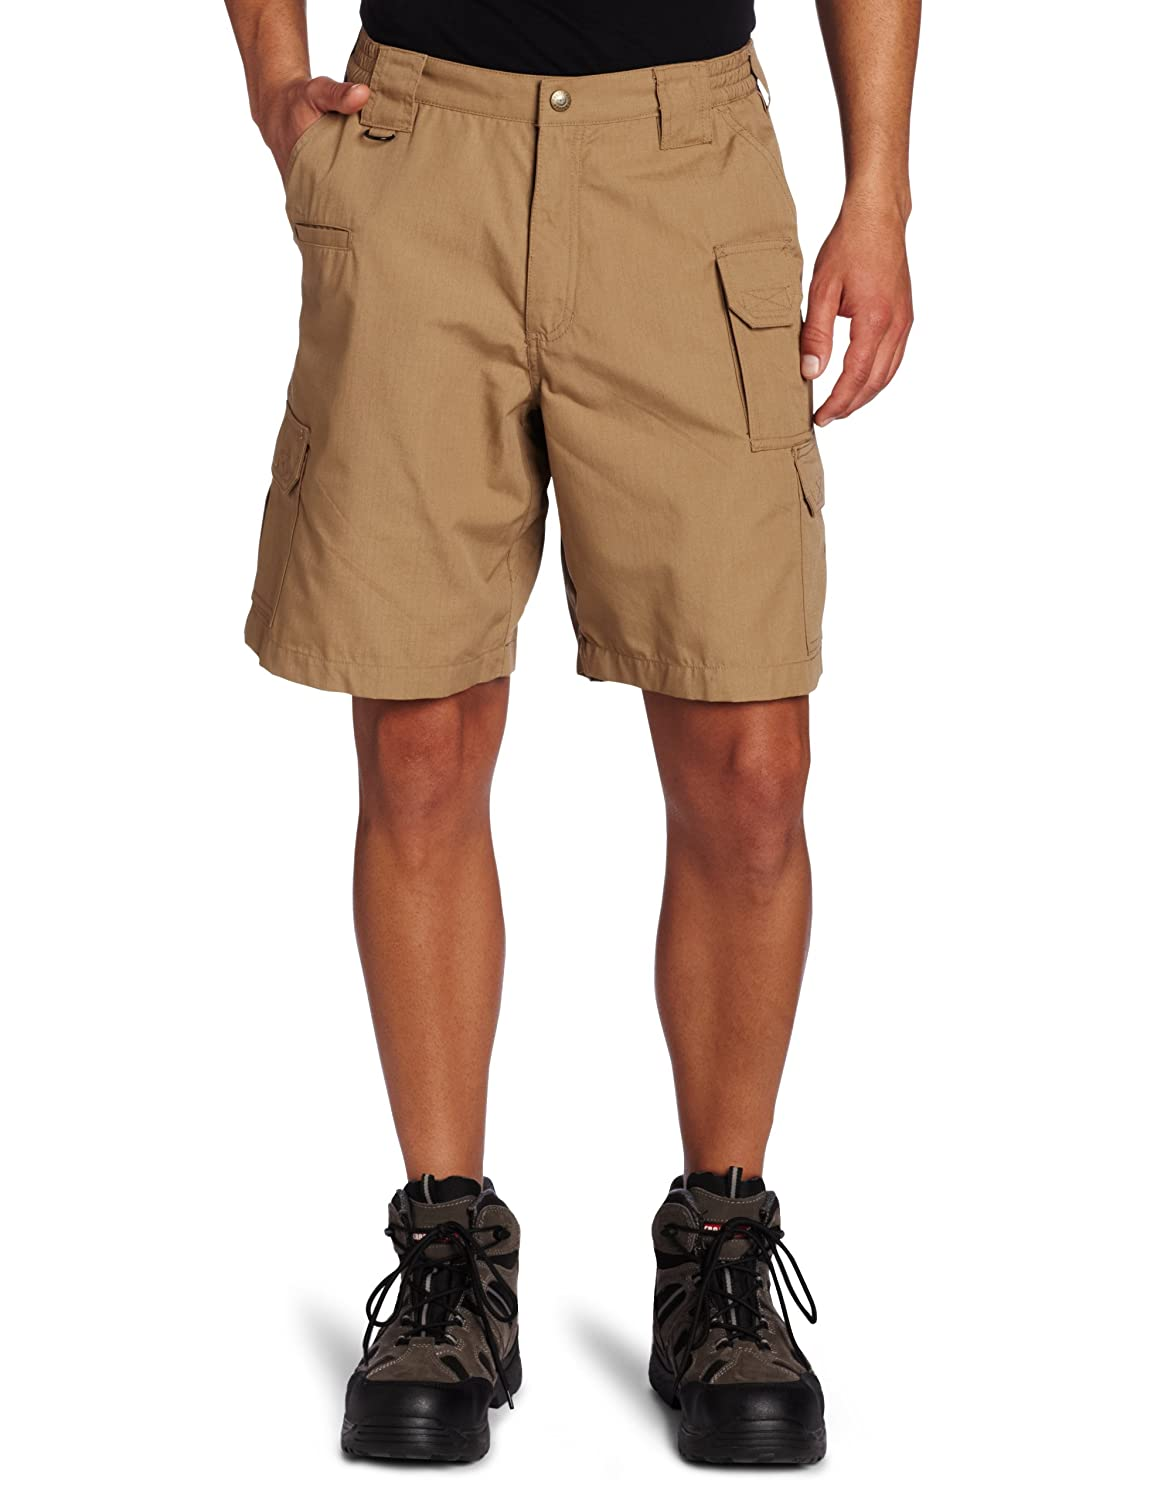 5.11 Tactical #73287 Men'S Taclite Shorts (Black, 30) 5-7328701928-$P